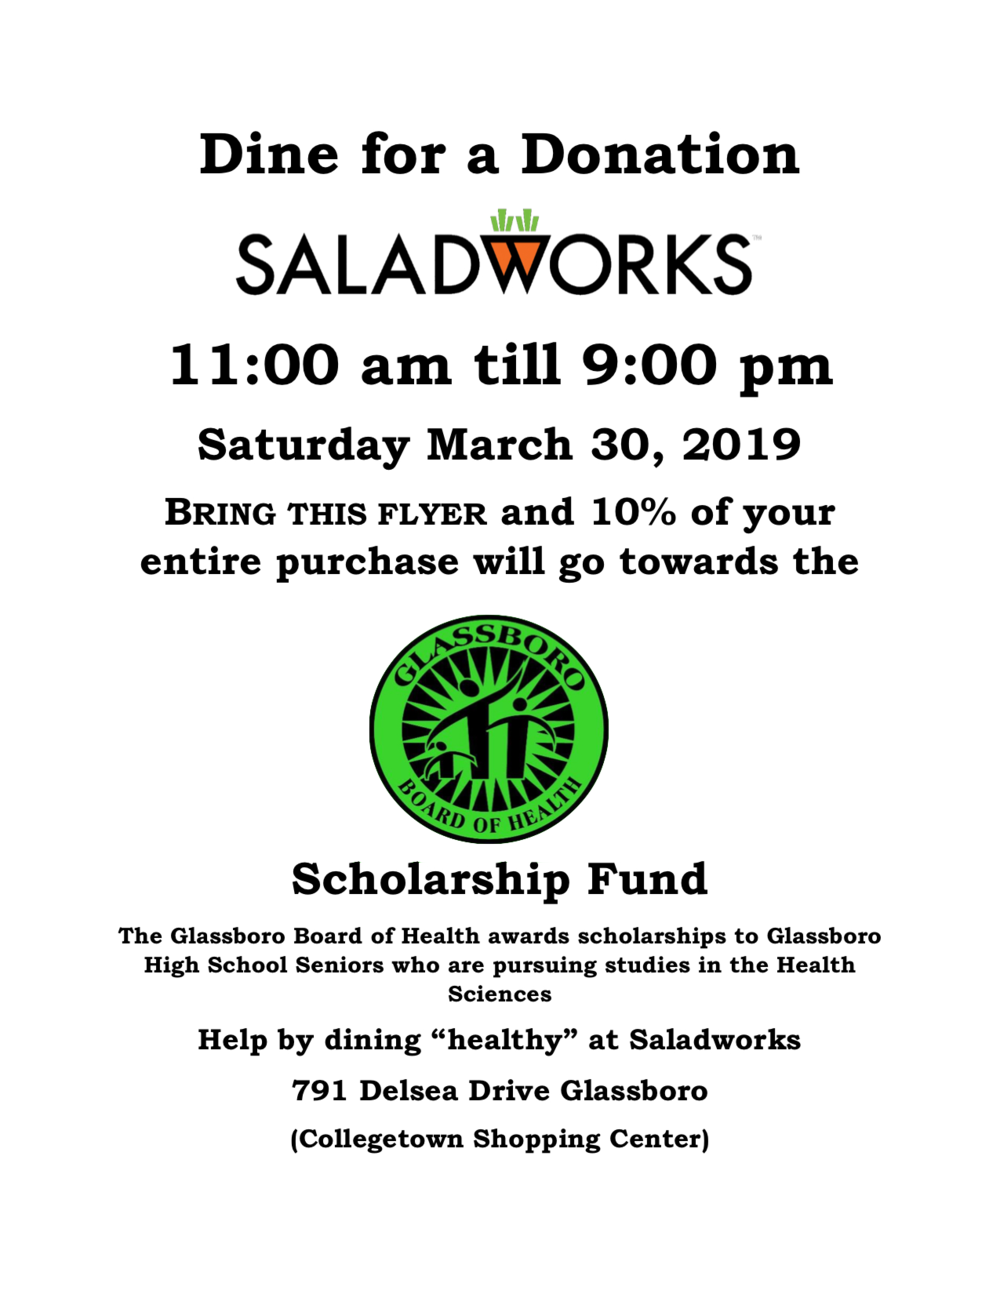 Saladworks Dine for Donation 2019.png